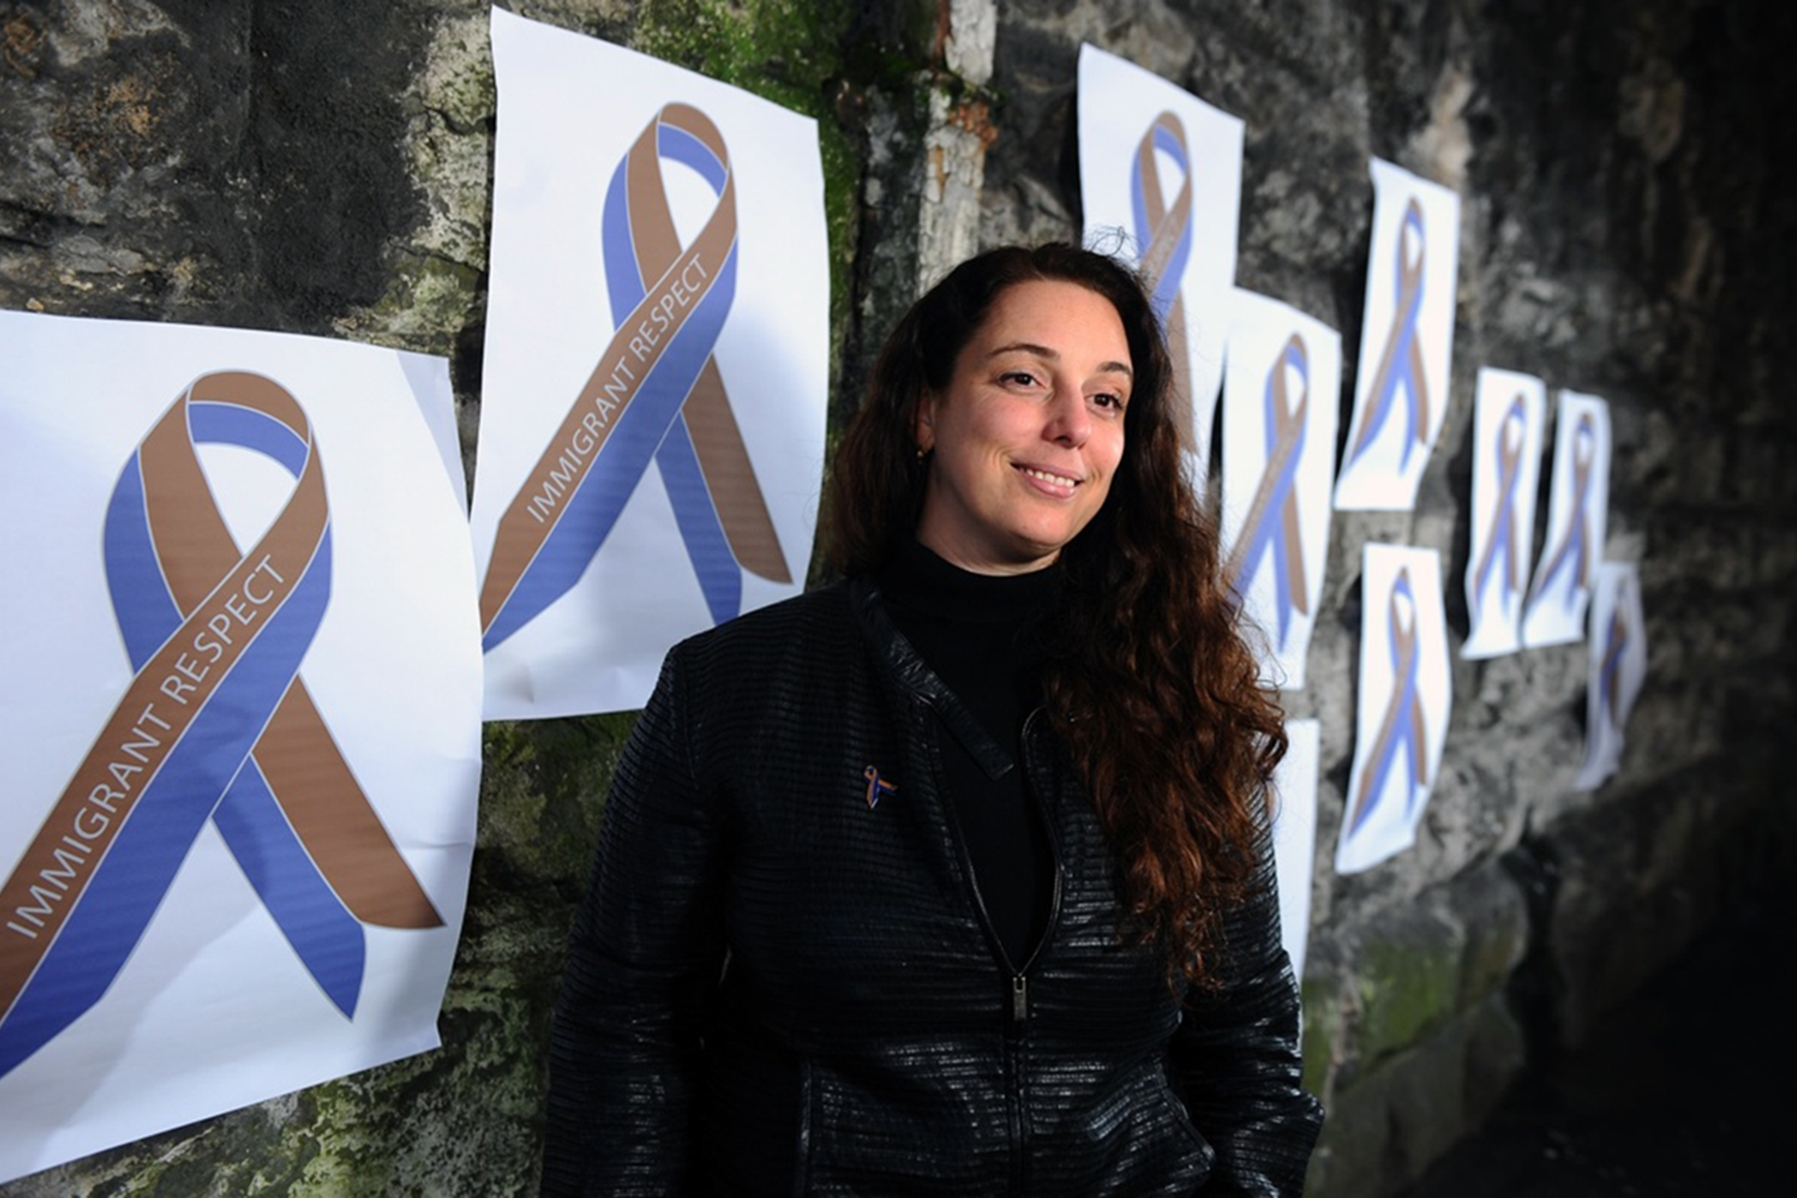 NYC DEPARTMENT OF CULTURAL AFFAIRS AND MAYOR'S OFFICE OF IMMIGRANT AFFAIRS ANNOUNCE TANIA BRUGUERA AS ARTIST-IN-RESIDENCE - NYC Mayor's Office of Immigrant Affairs